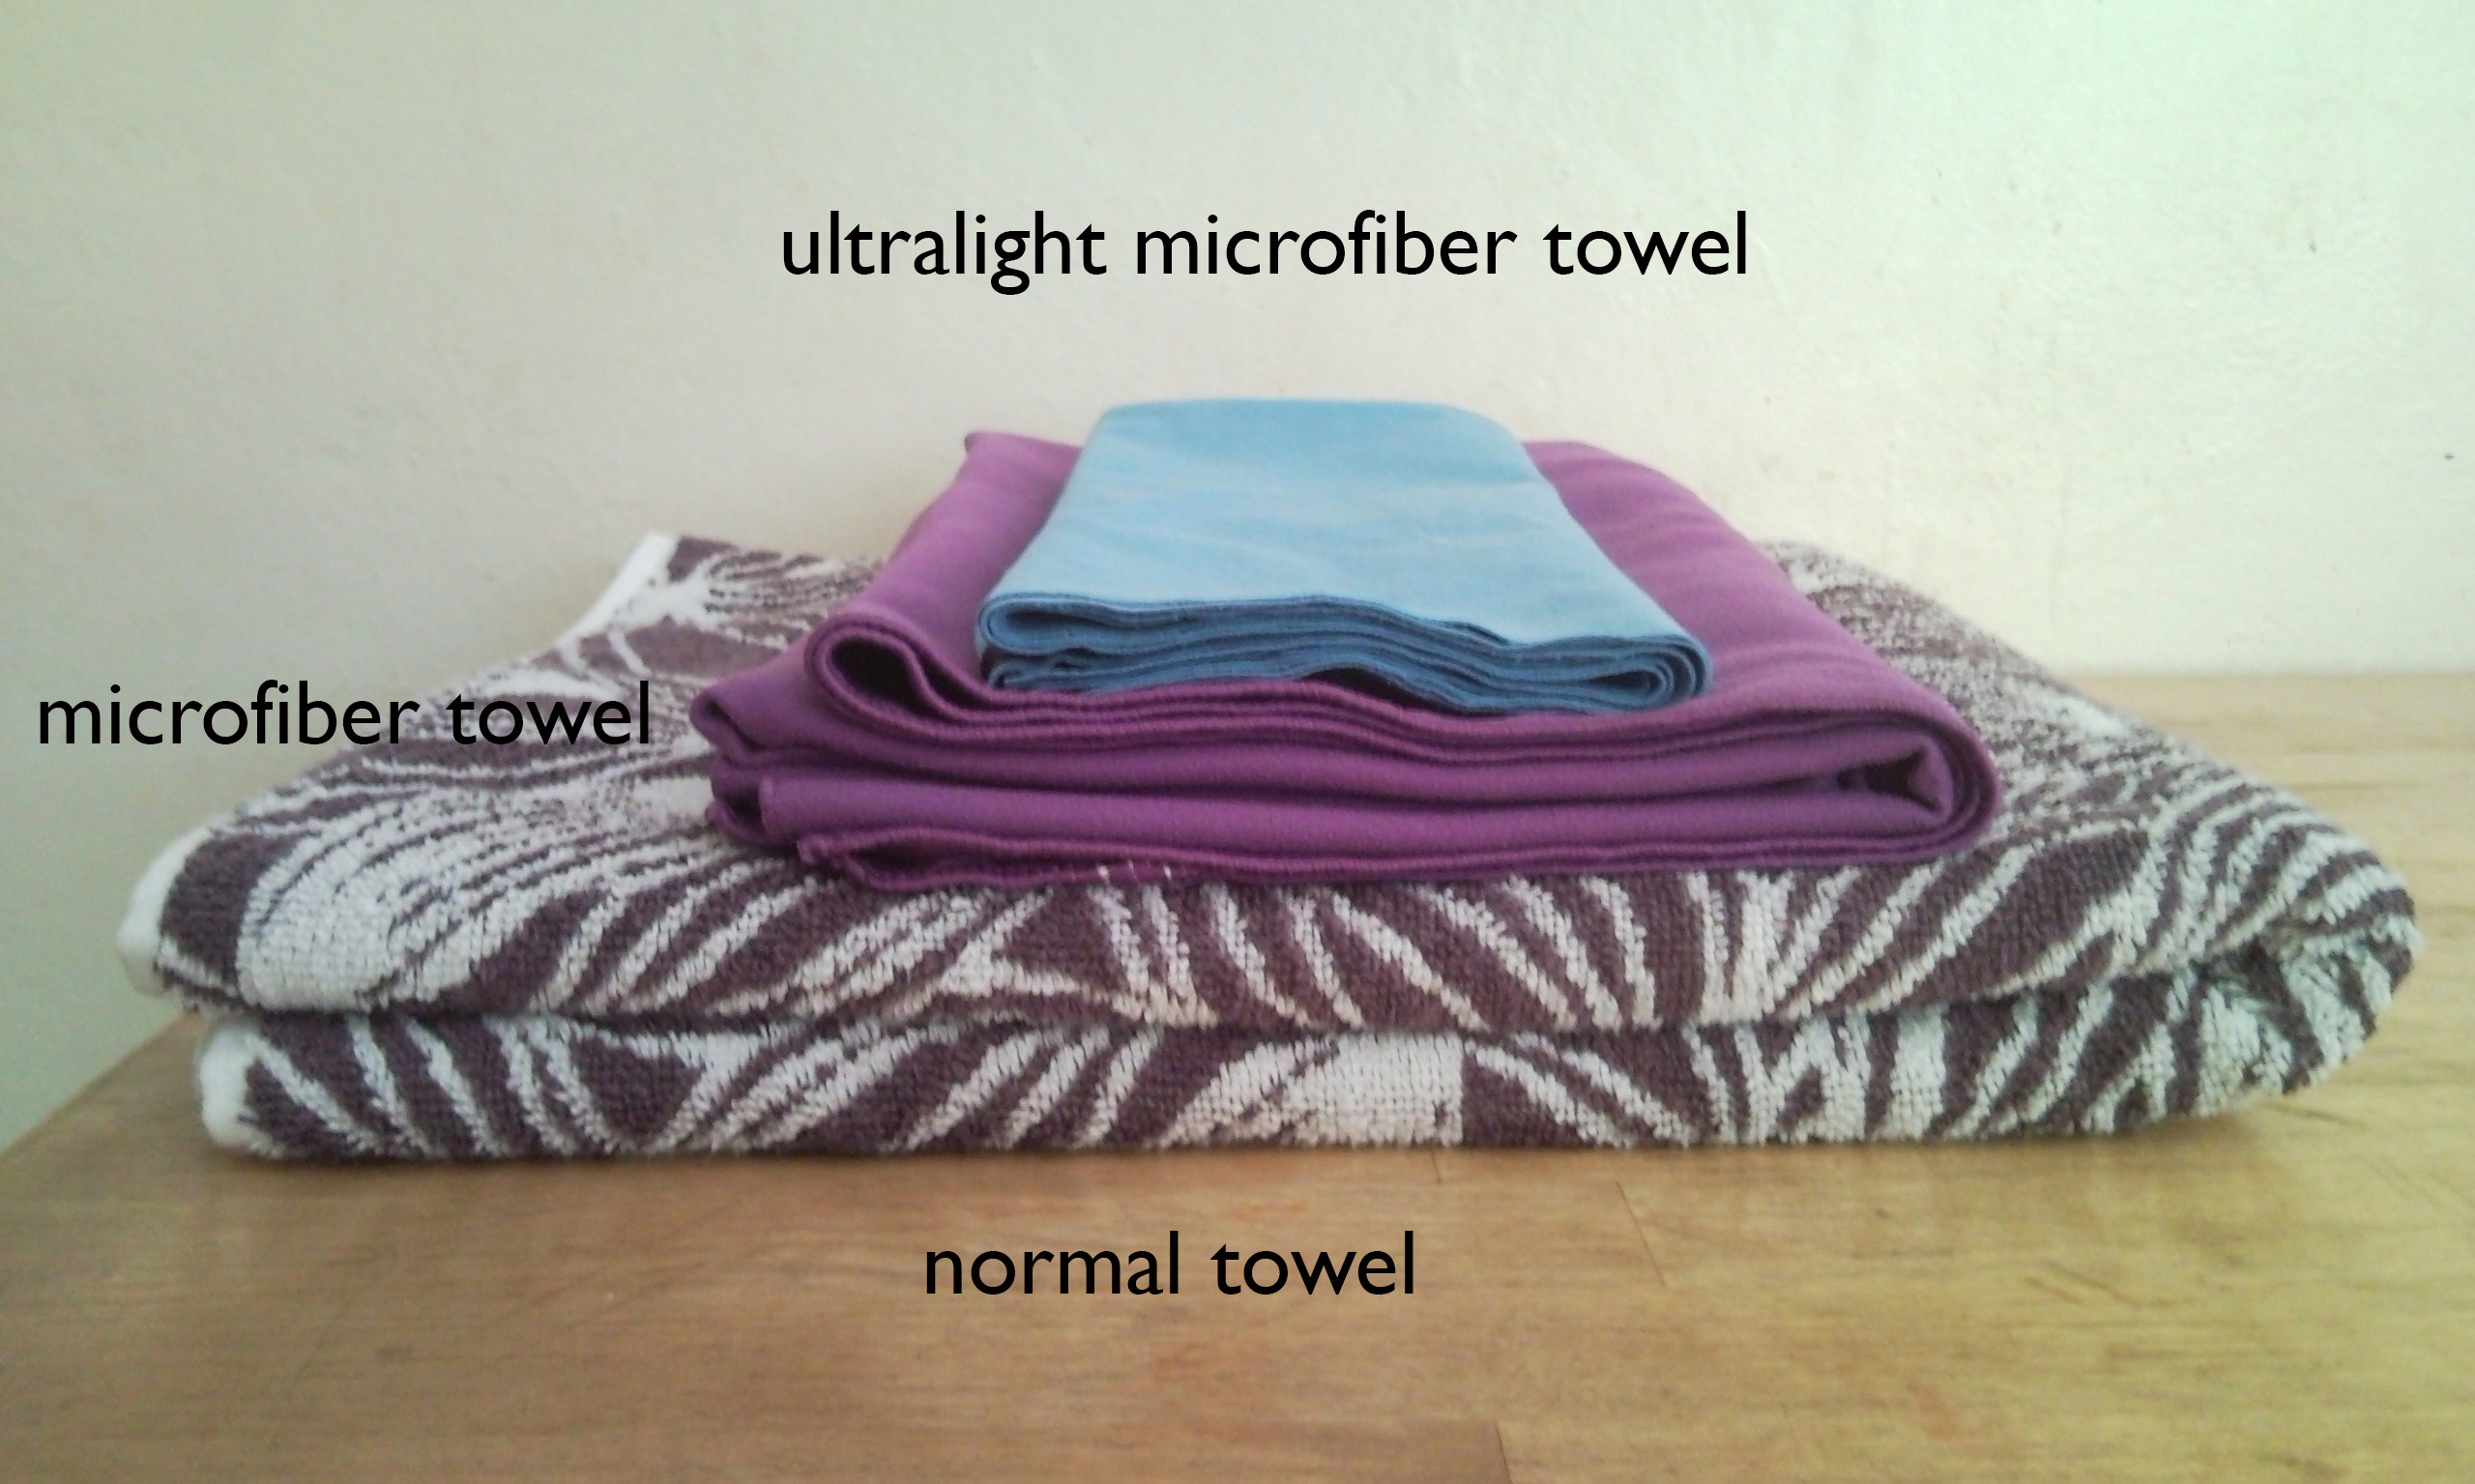 Light travellers' best friends Microfiber towels